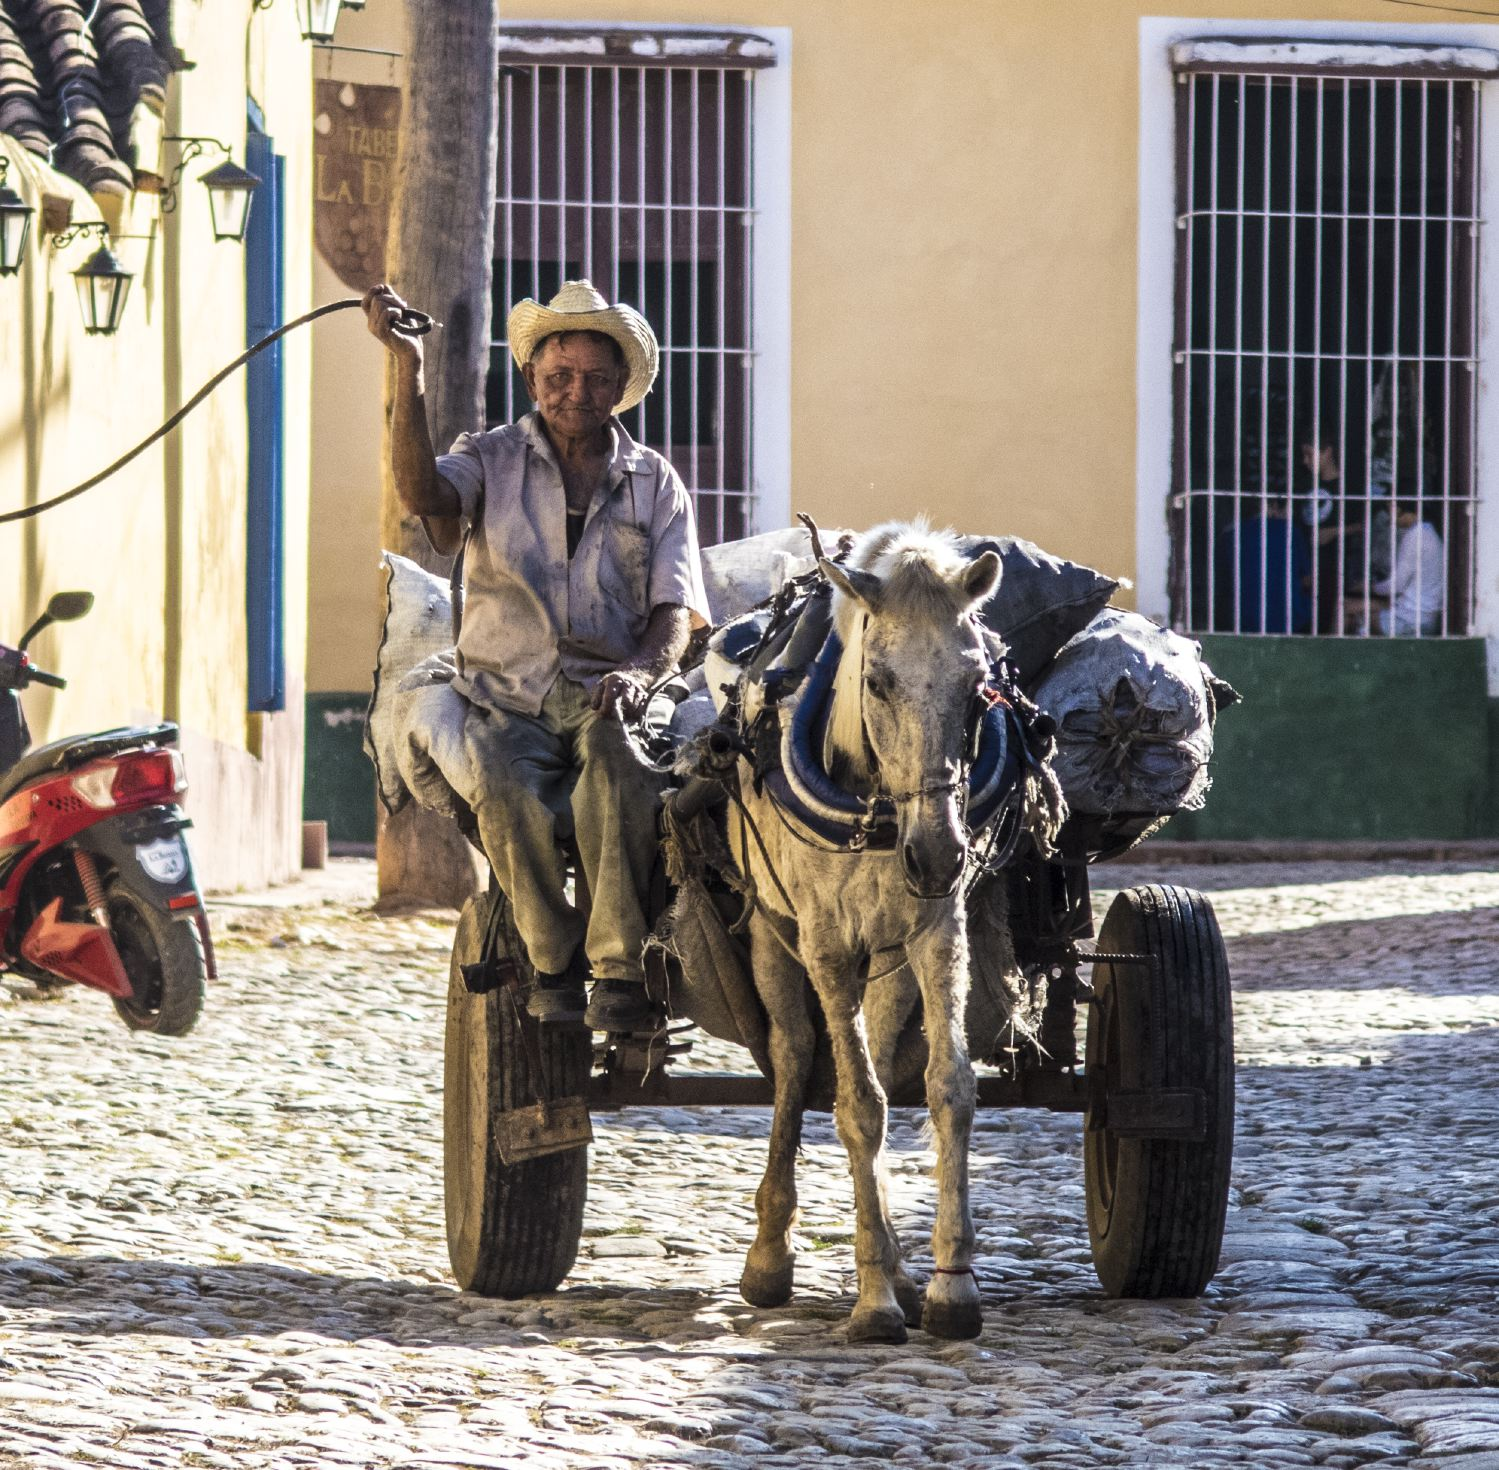 horse-carriage-cuba-michael-benabib-travel-photo.JPG